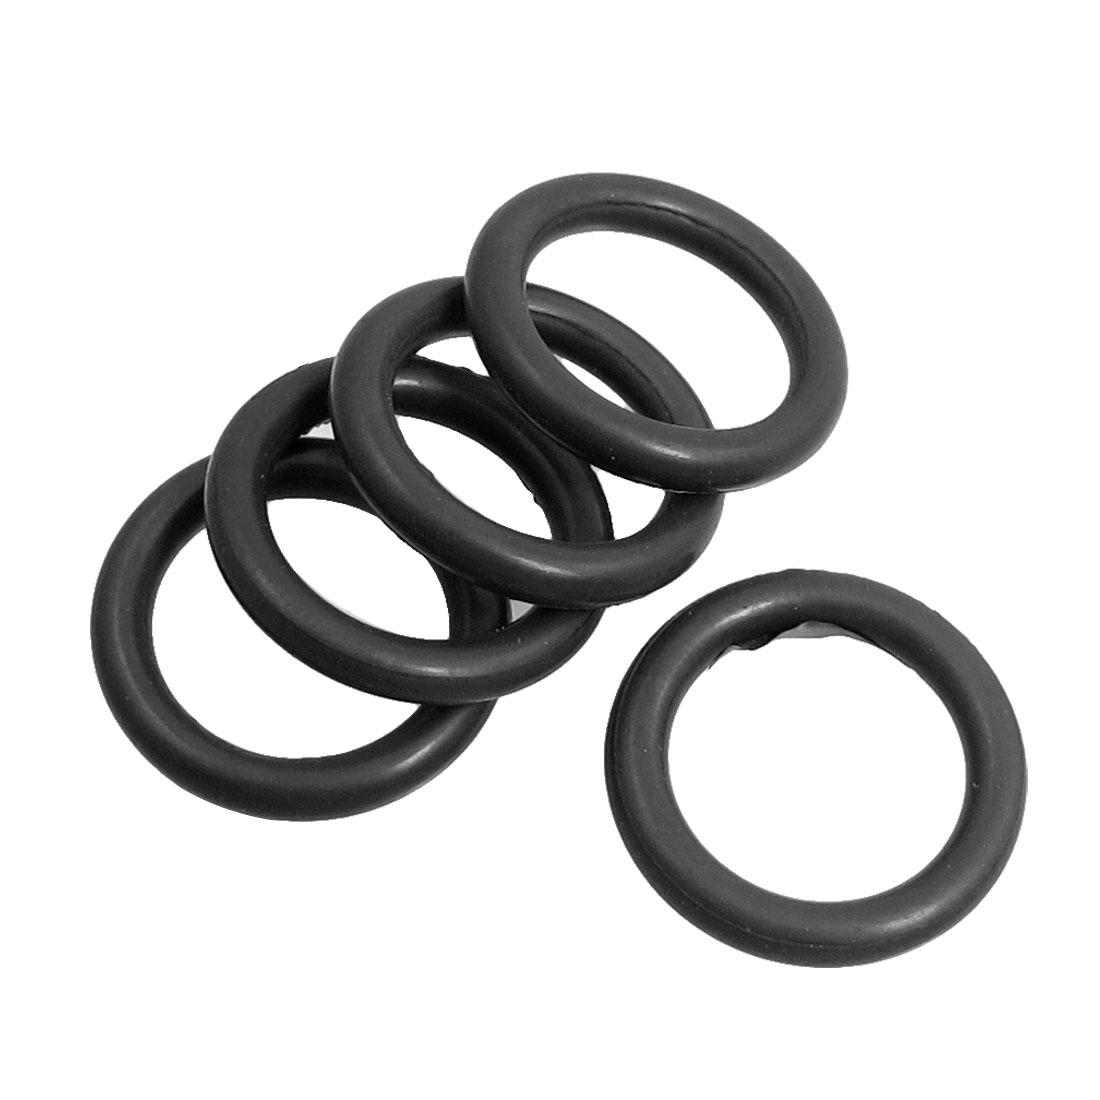 5 Pcs 20mm x 3mm Industrial Rubber O Ring Oil Seal Gaskets for Bosch GBH2-20SE